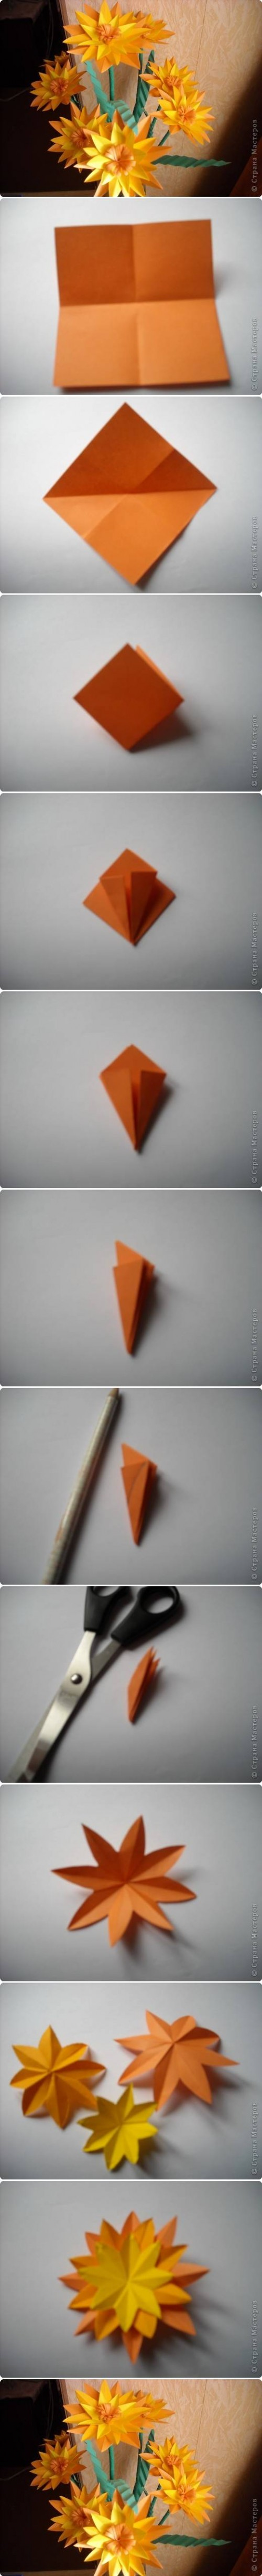 How to make Paper Marigold Flower step by step DIY tutorial instructions 500x4909 How to make Paper Marigold Flower step by step DIY tutorial instructions